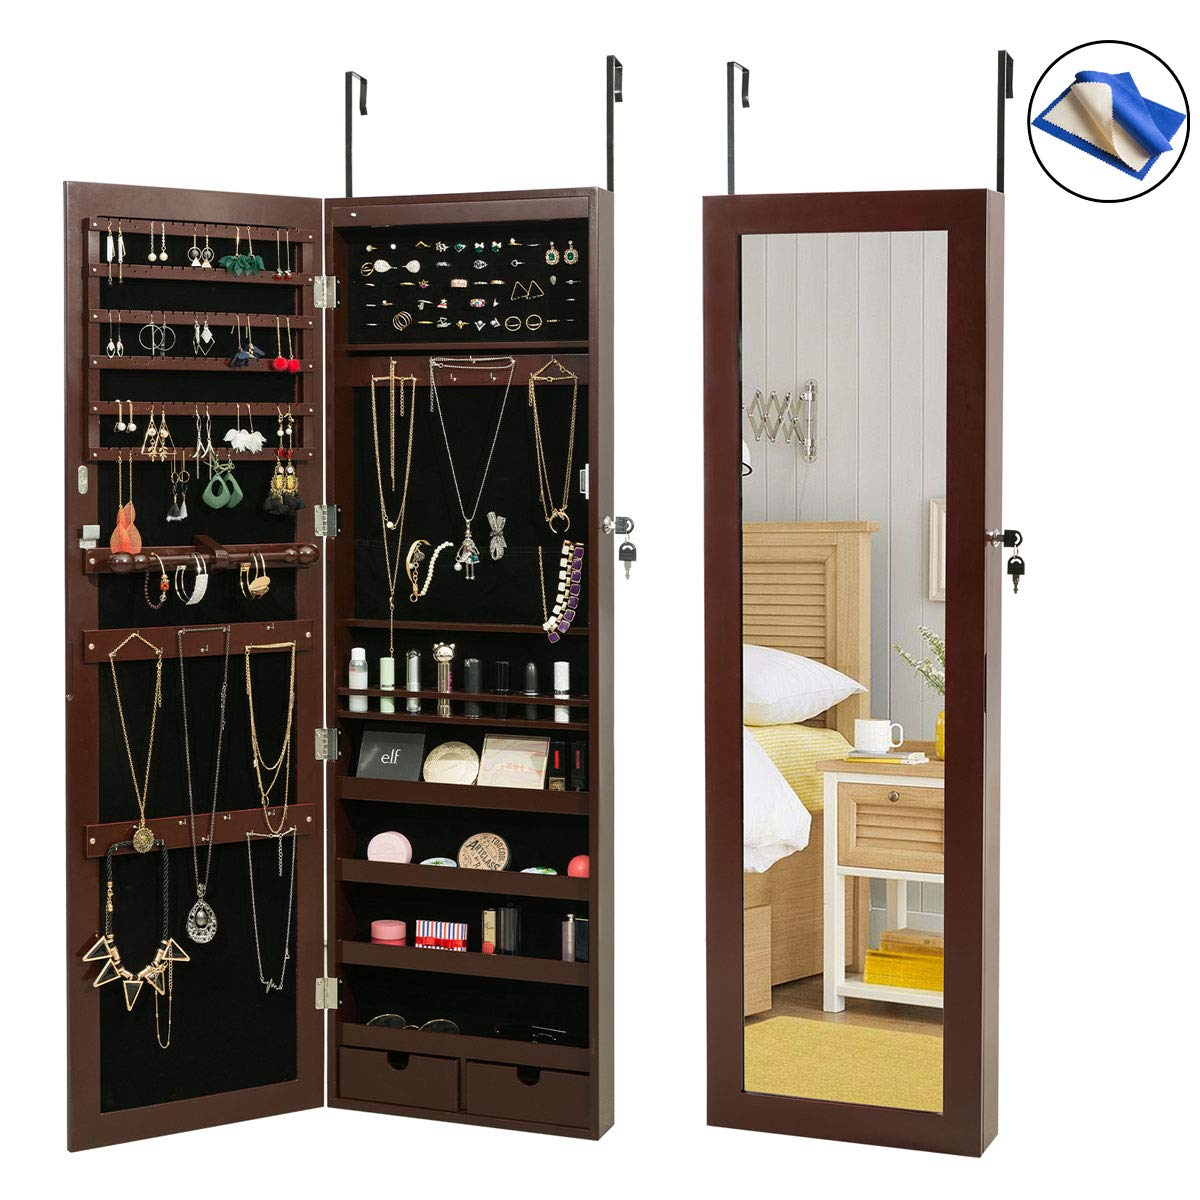 HollyHOME Jewelry Armoires LEDs Jewelry Cabinet Lockable Wall Door Mounted Organizer Storage with Mirror,Brown